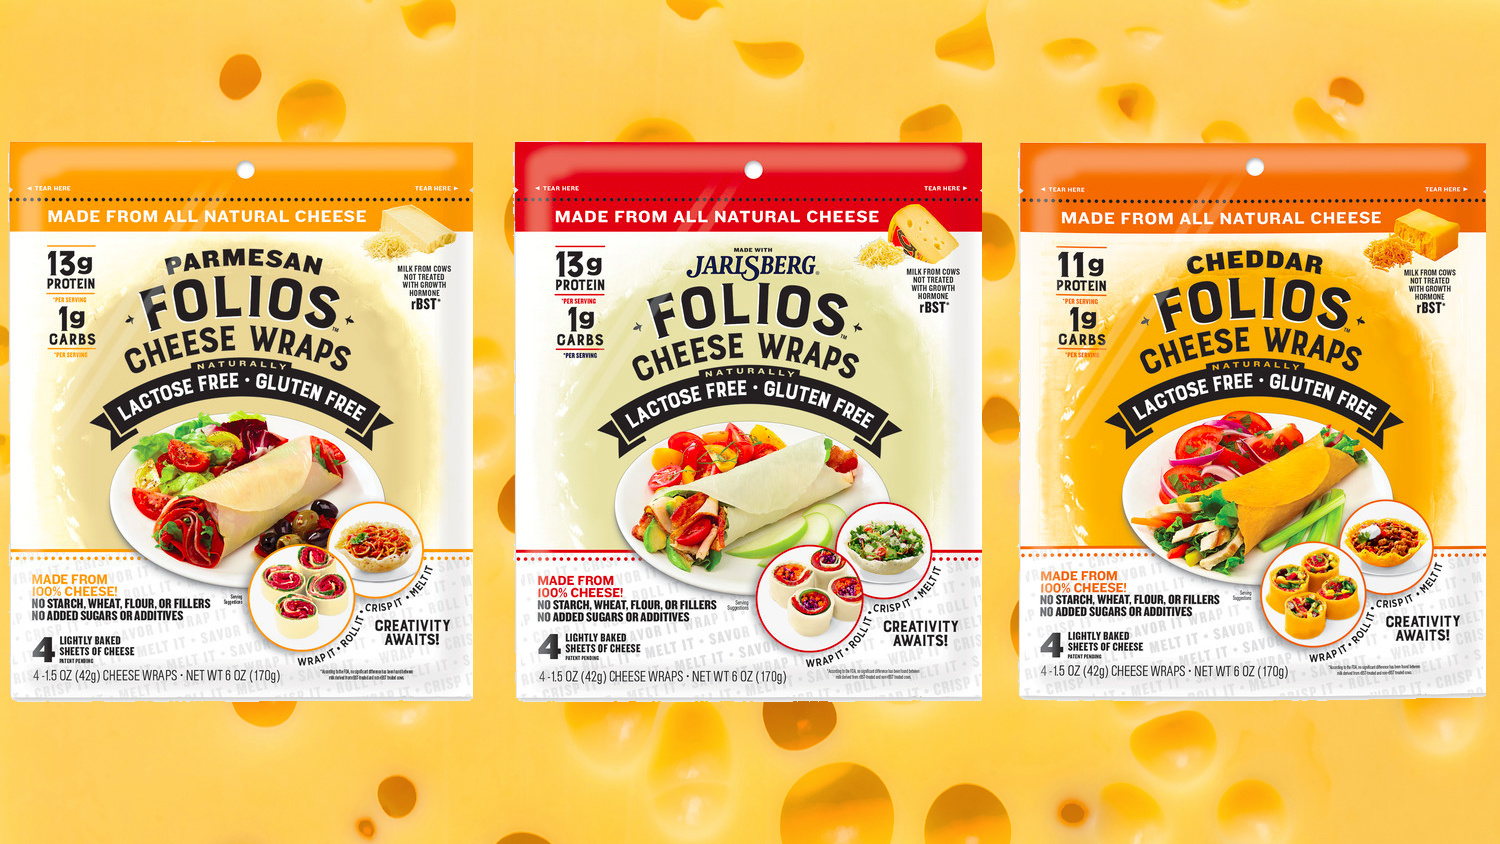 These new keto diet tortillas are made of 100% cheese